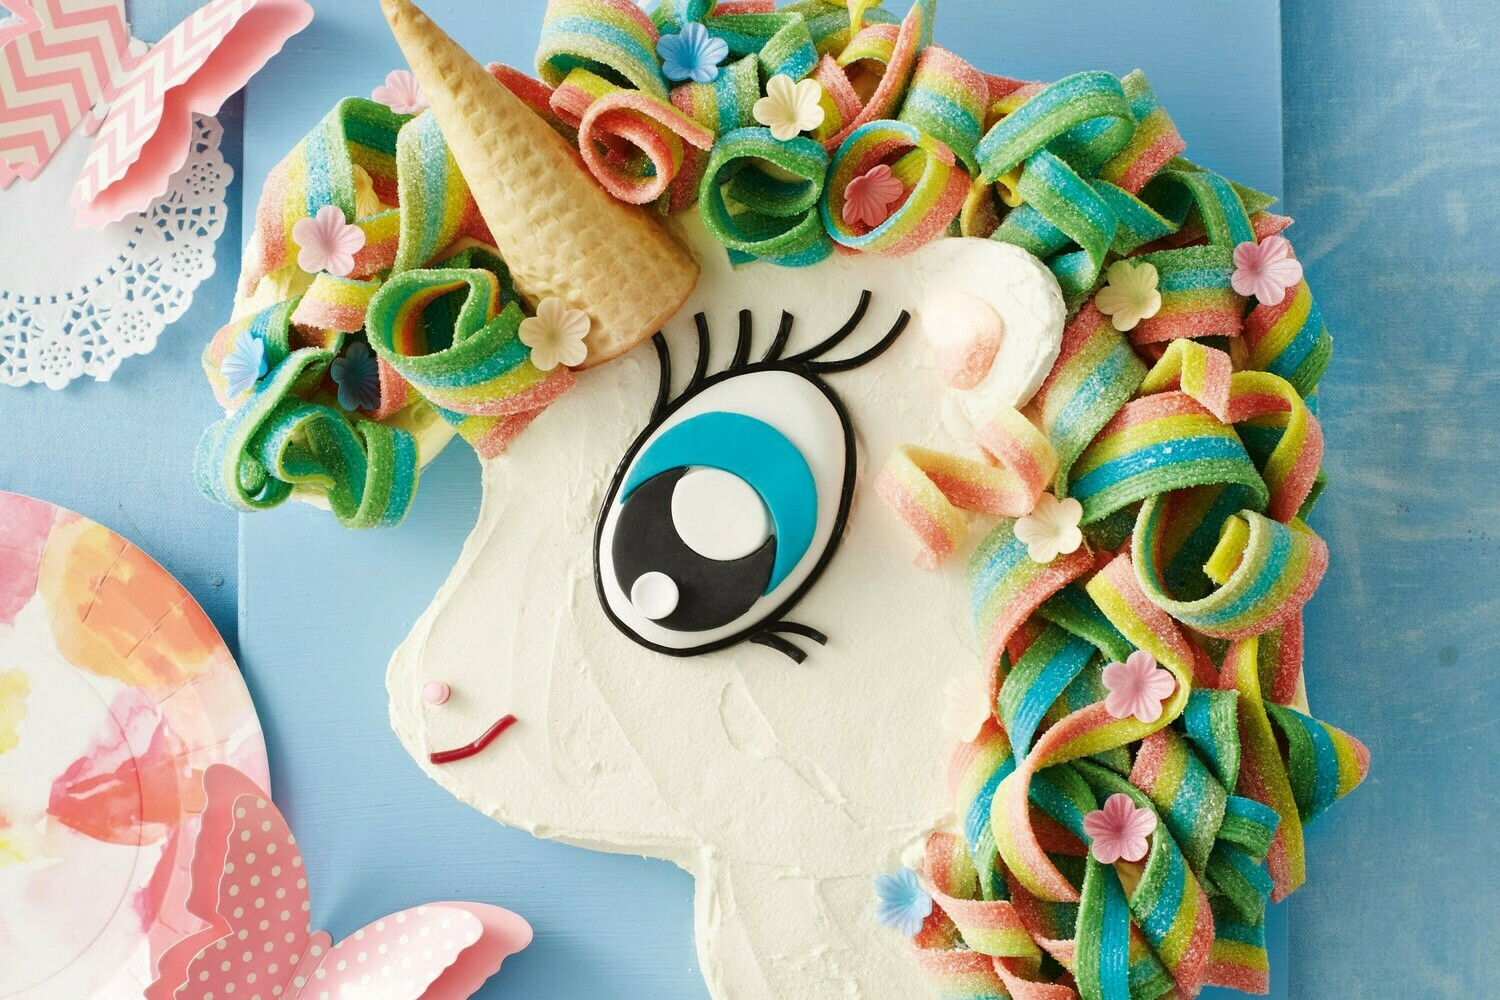 Unicorn pull-a-part cake - School Holiday Workshop For Kids - Tuesday 7 July 2020 - 1pm to 3pm